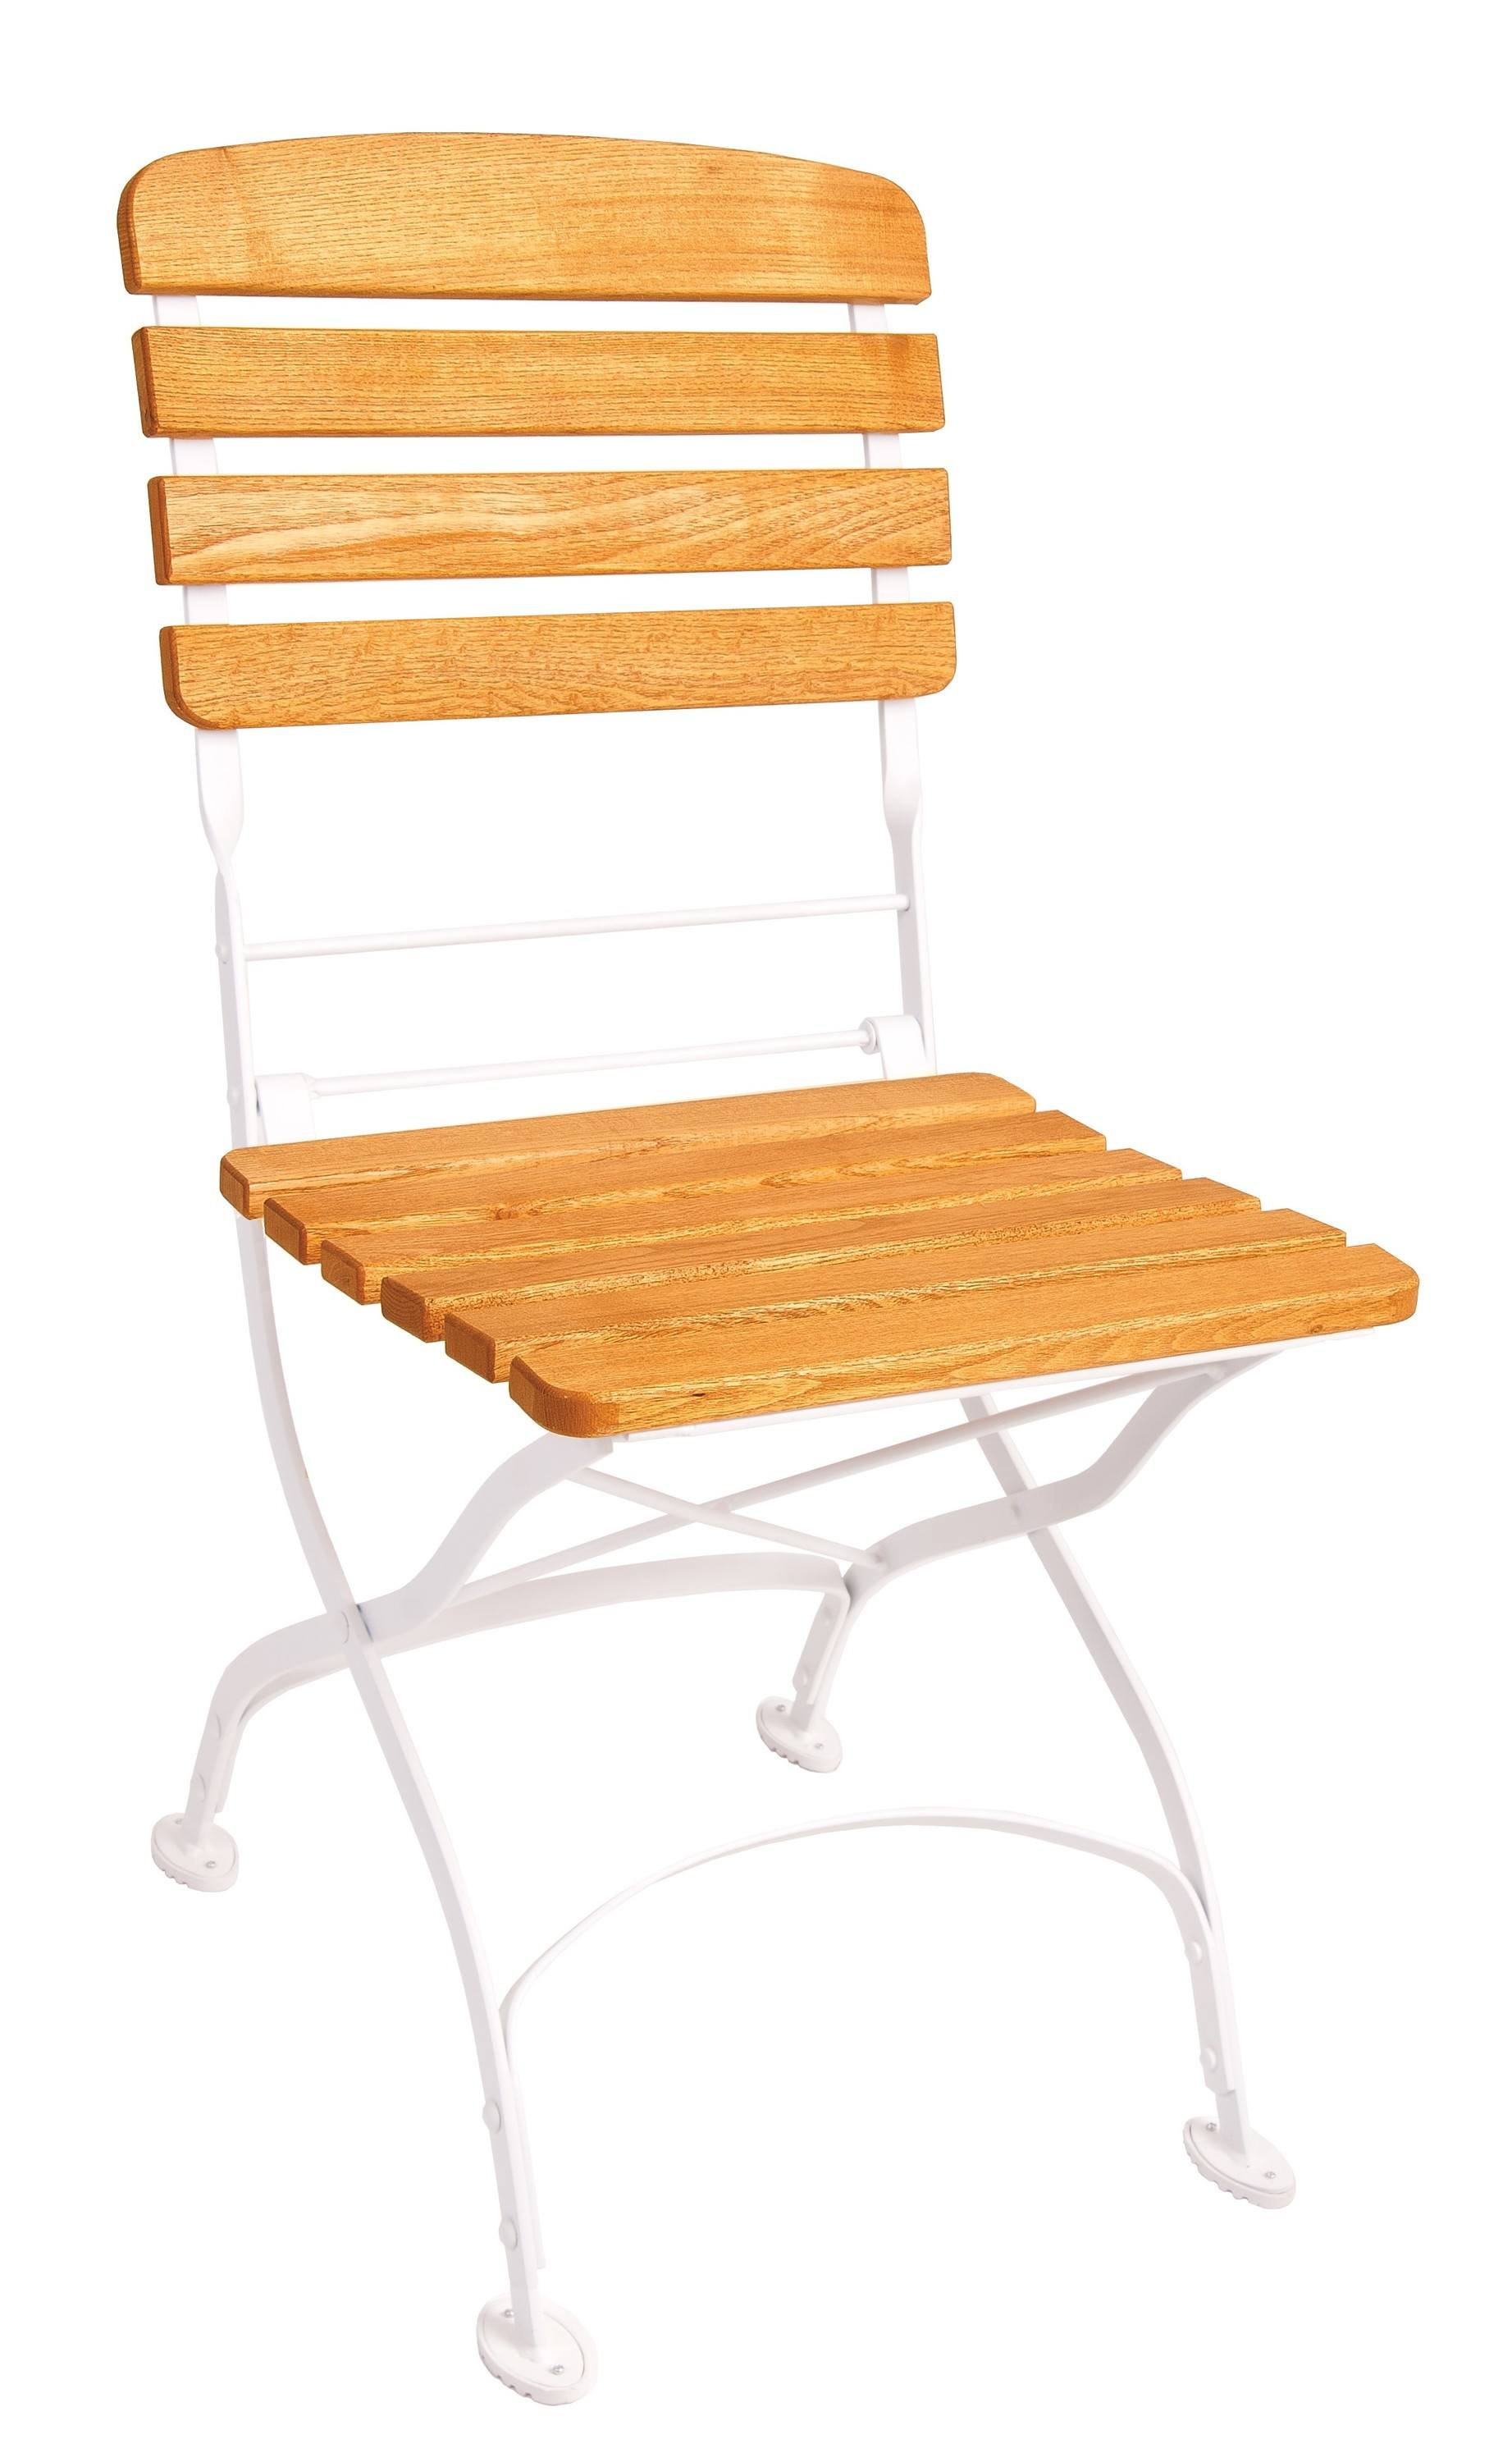 <p>Outdoor Furniture – Metal & Wooden Dining Collection – Creta Chair.</p> <p> </p> <p>Creta Furniture – Chair with honey coloured hardwood seat armrests and backrest with gently curved metal shaped frame.</p> <p> </p> <p>Ideally suited for either indoor or outdoor relaxed dining location in pubs or restaurants or more intimate café bistro al fresco area or for events requiring easy to fold and store furniture.</p>